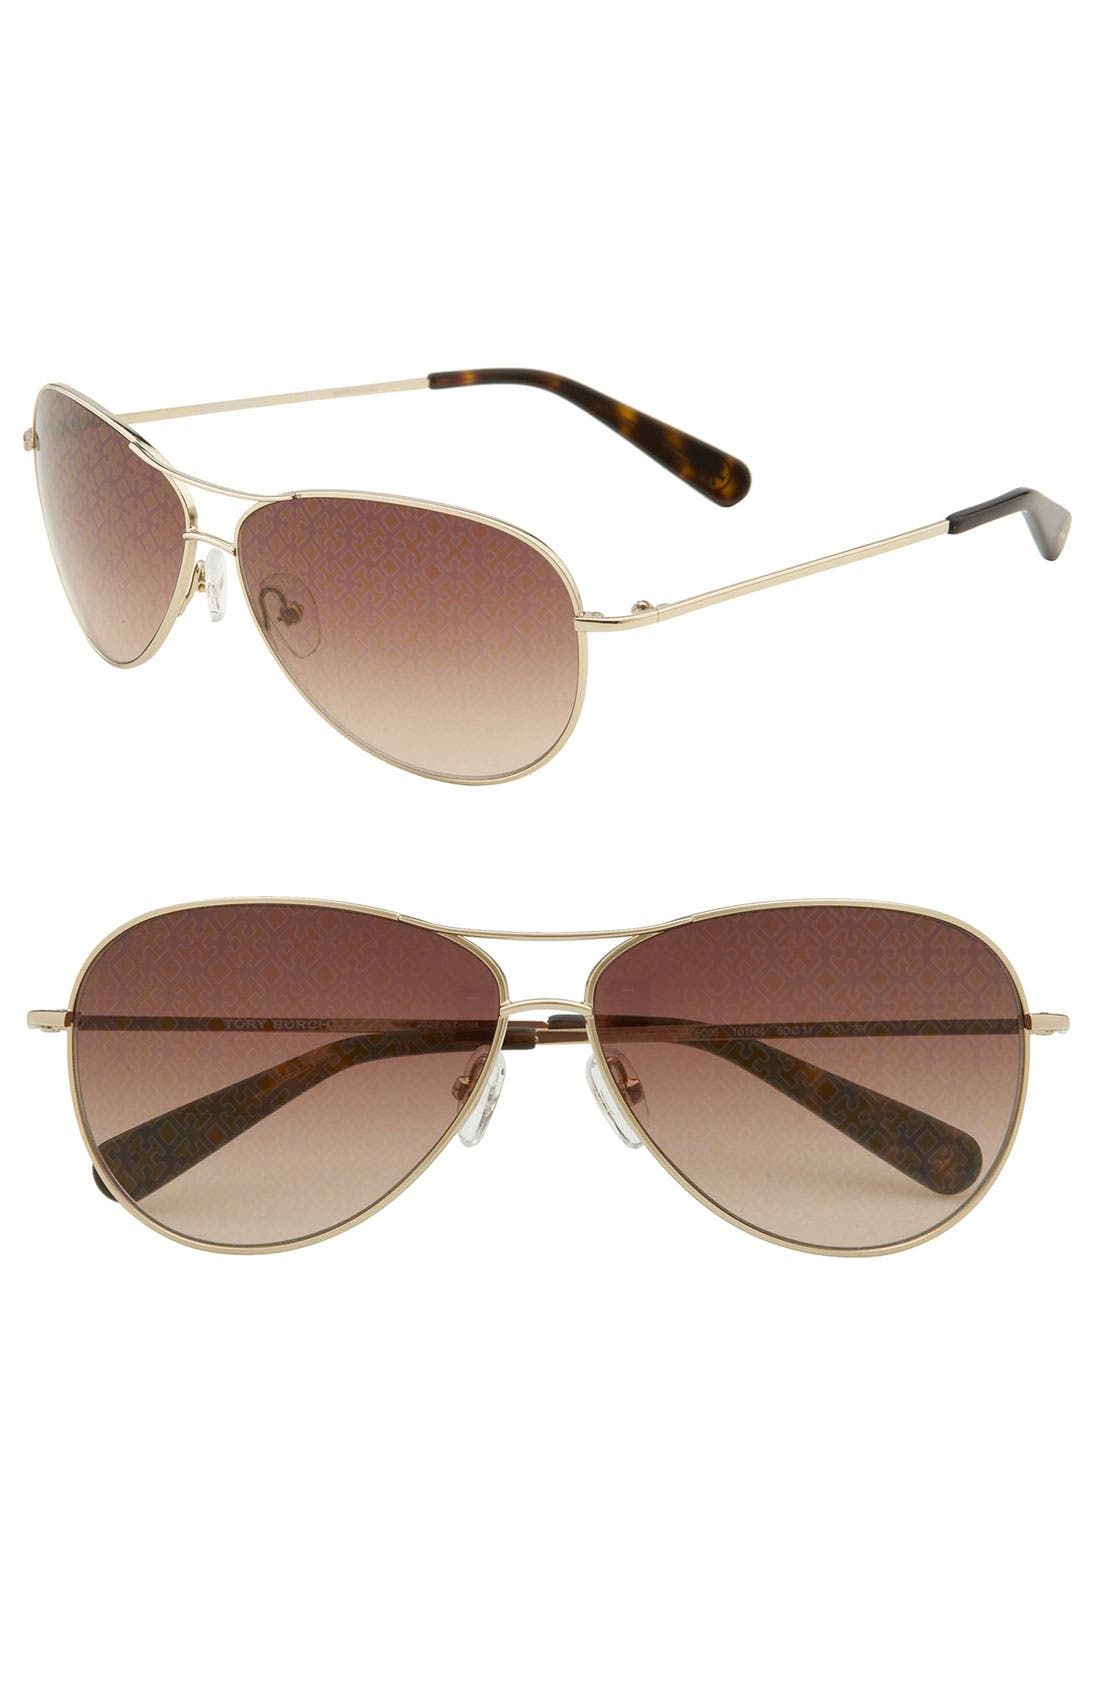 Alternate Image 1 Selected - Tory Burch 60mm Metal Aviator Sunglasses